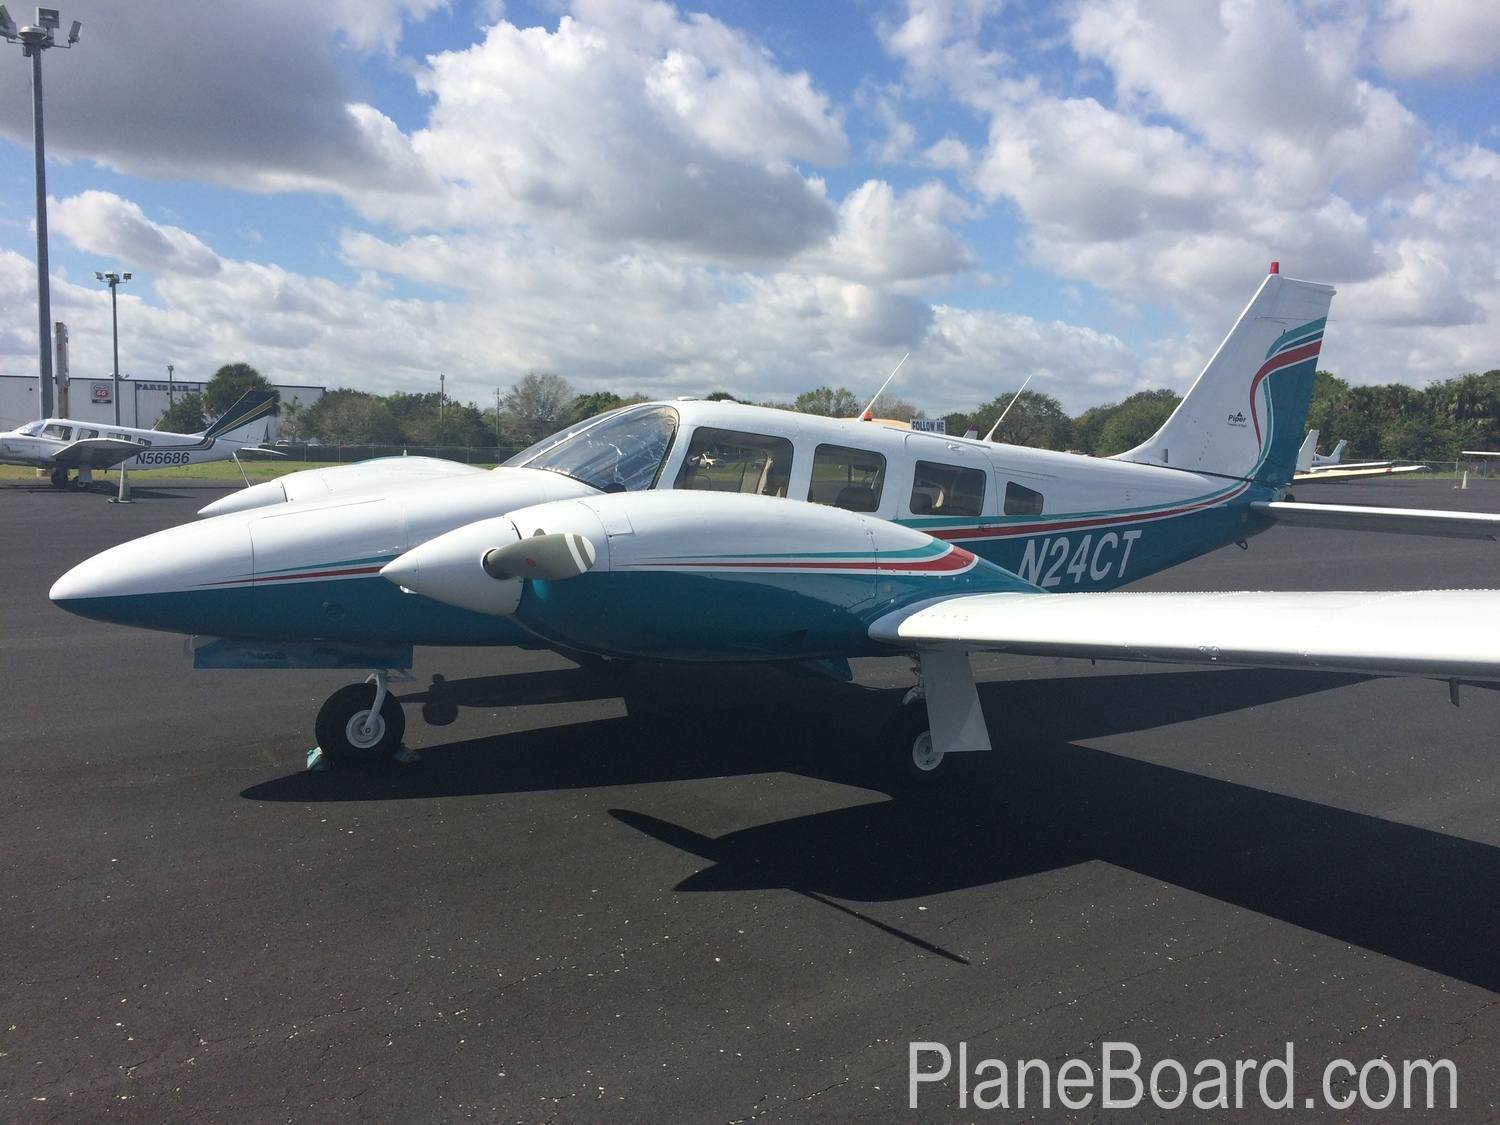 1976 Piper Seneca II primary